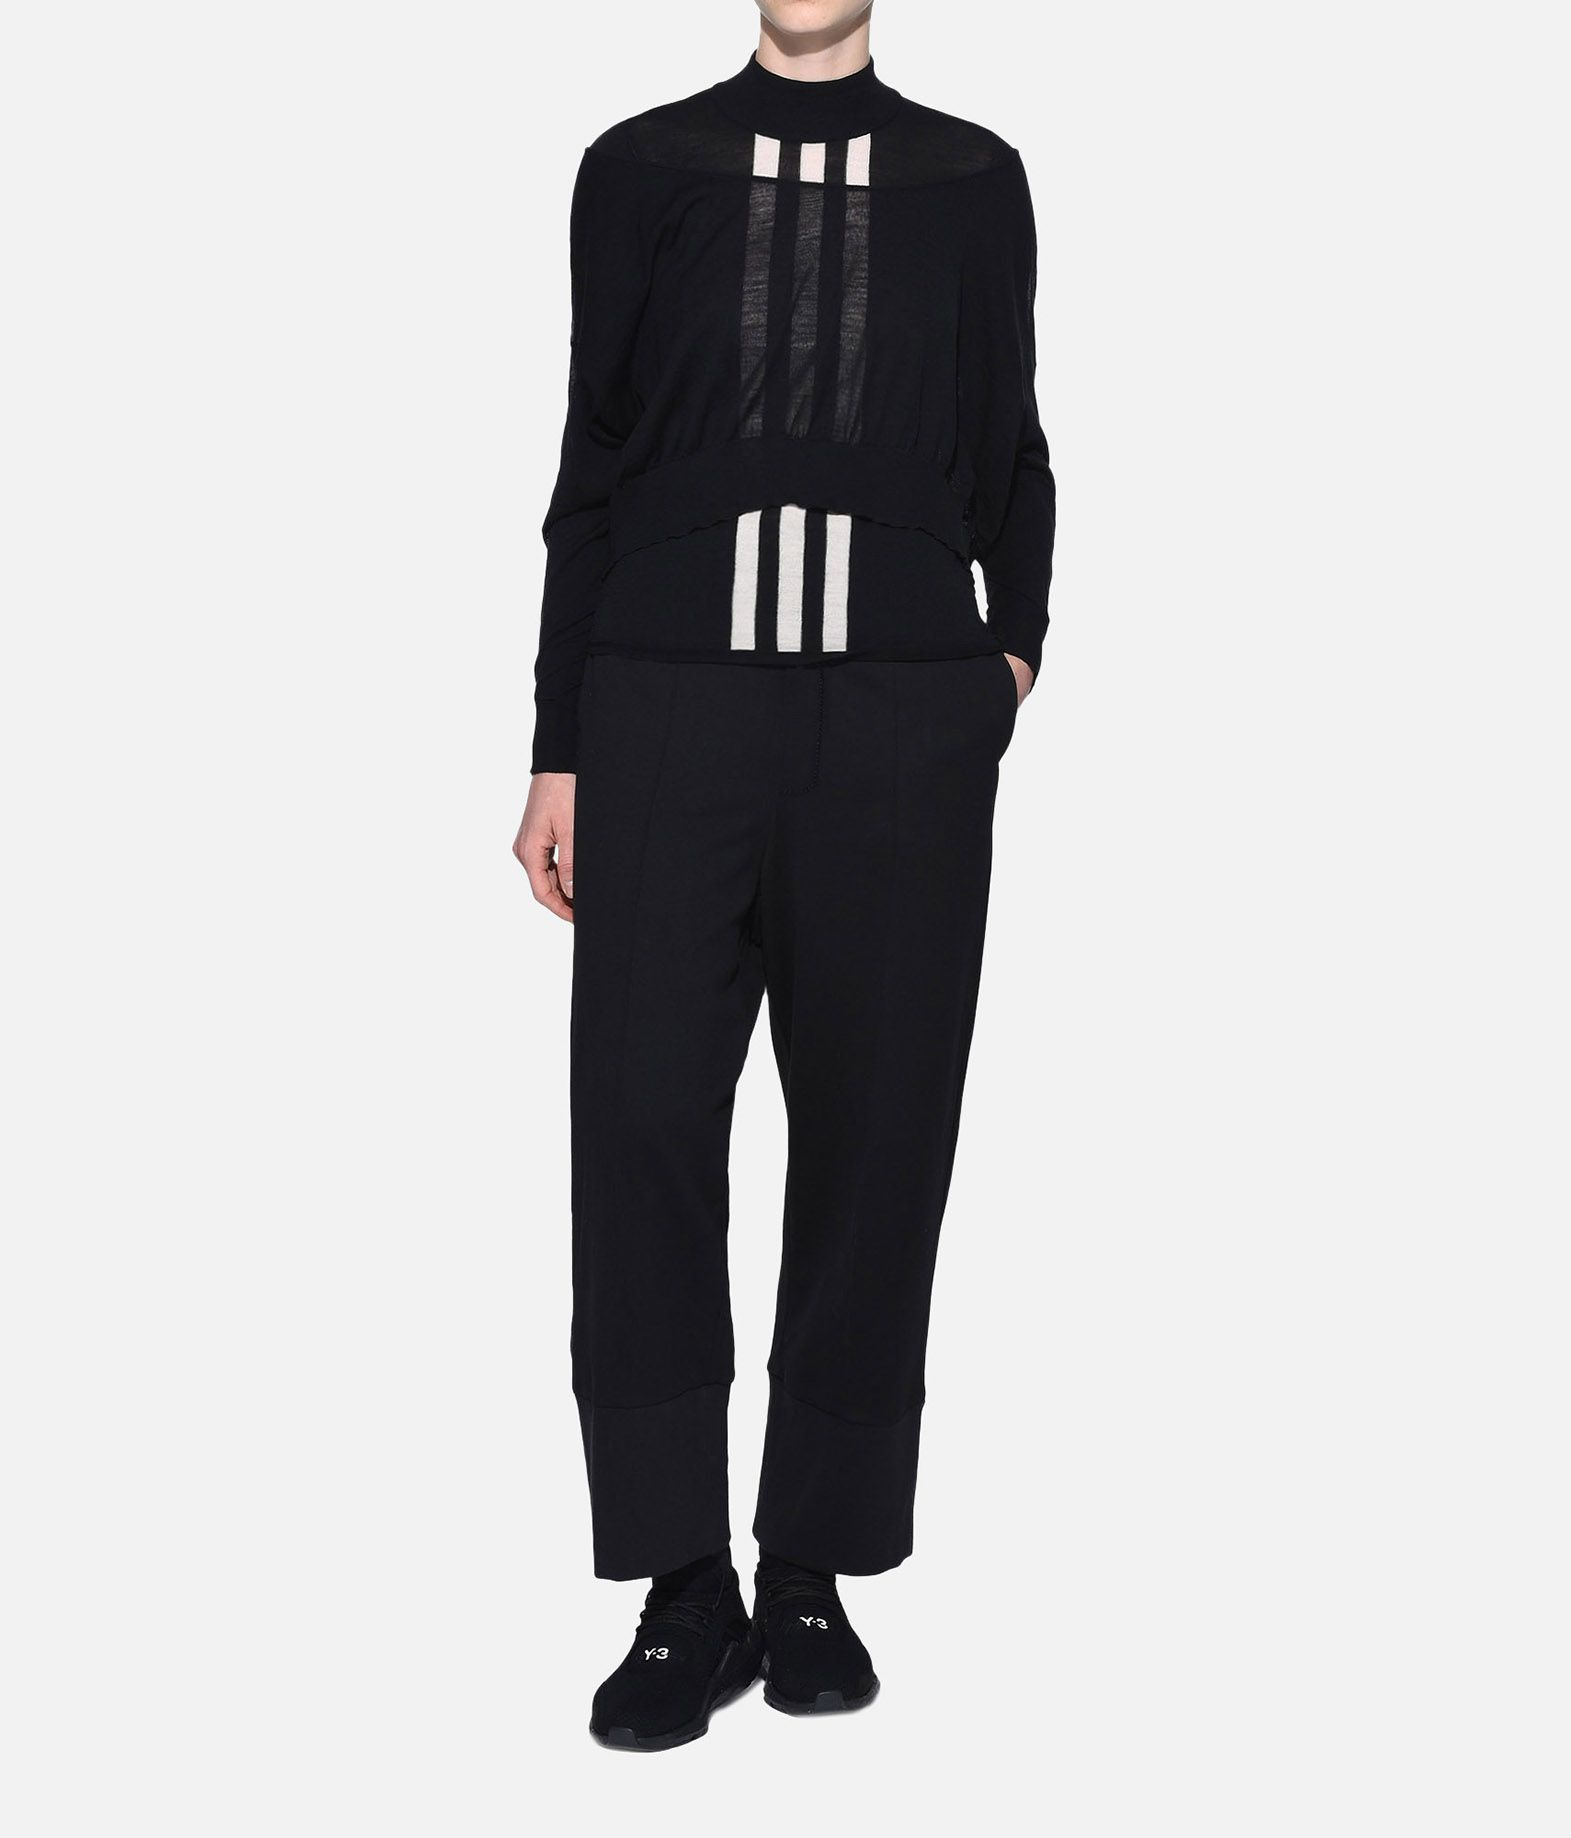 Y-3 Y-3 Layered Knitted Cropped Sweater Long sleeve sweater Woman a